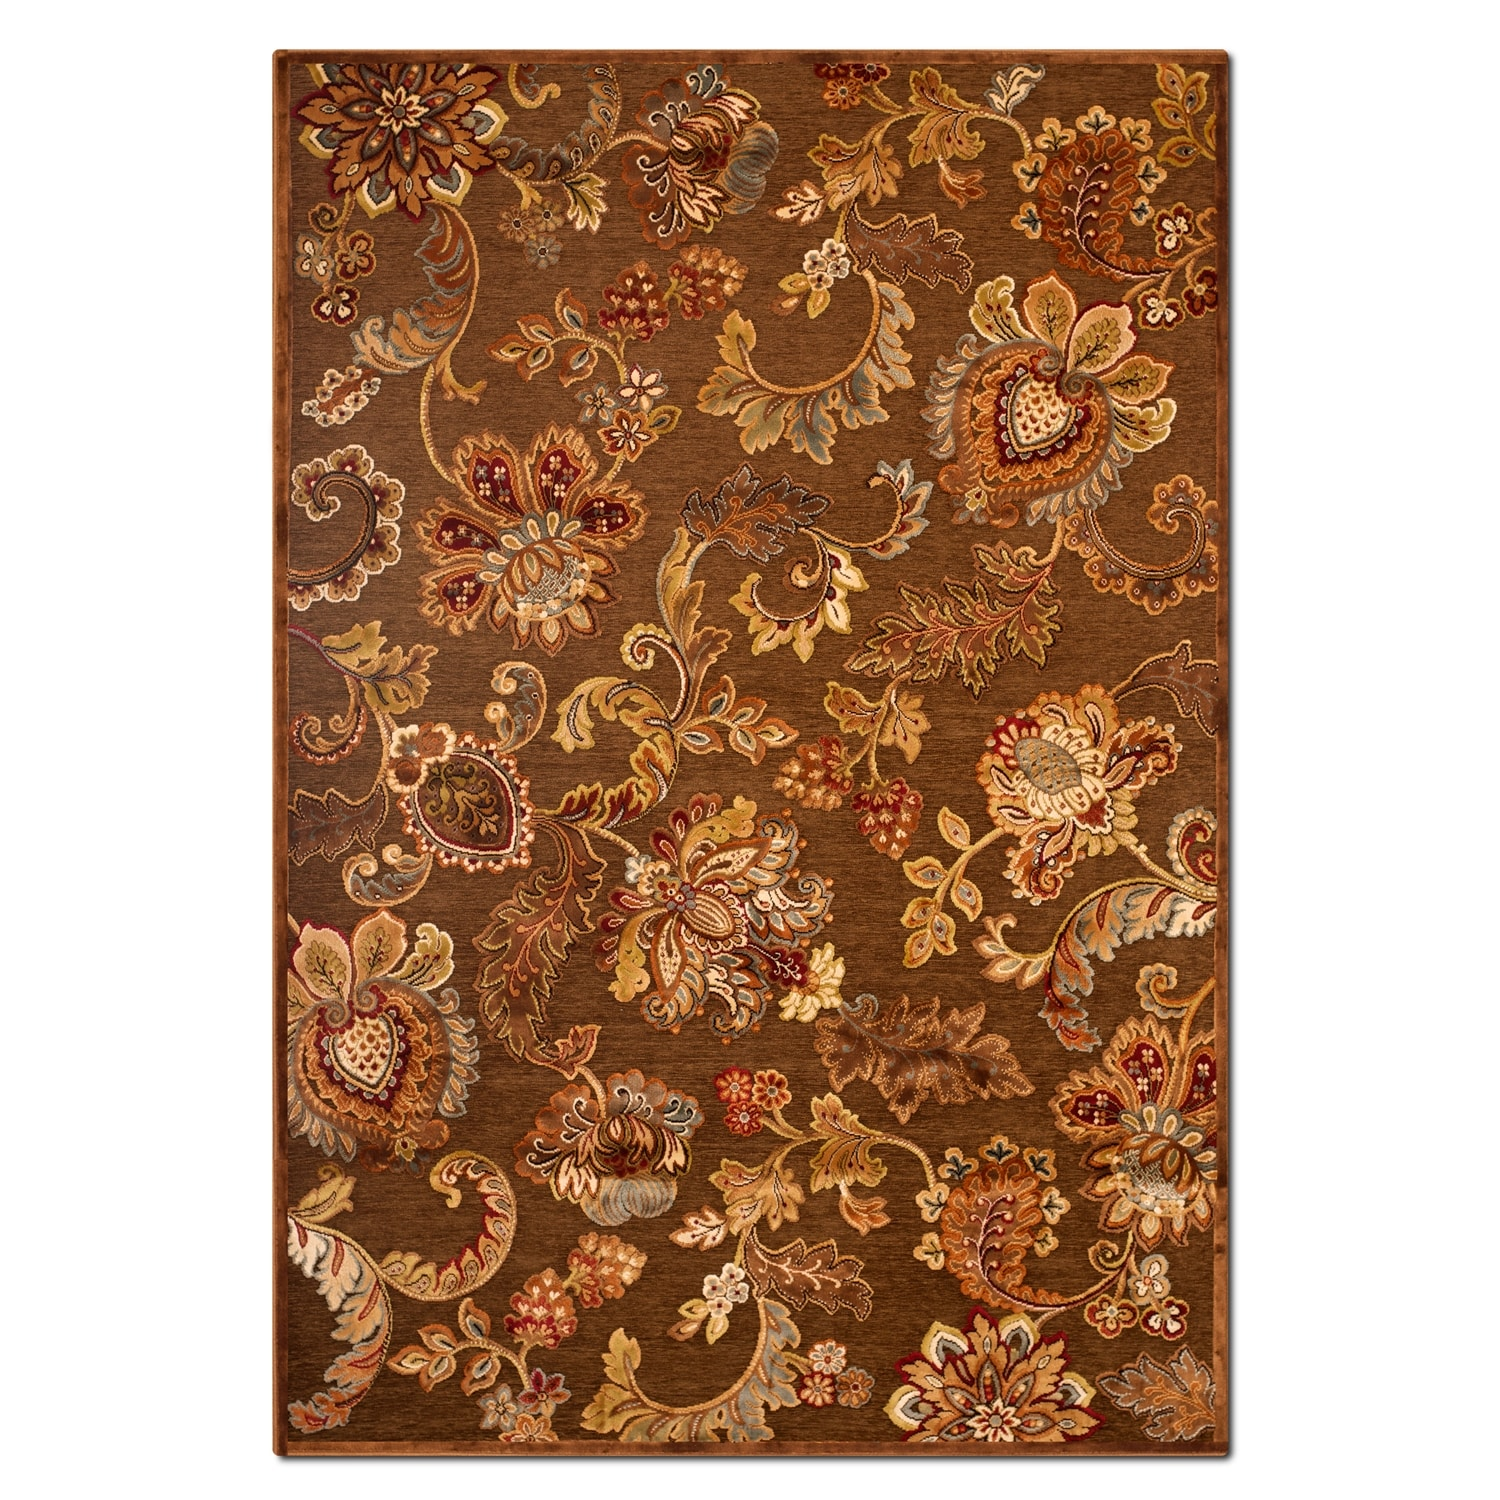 Napa Meadow Area Rug (5' x 8')